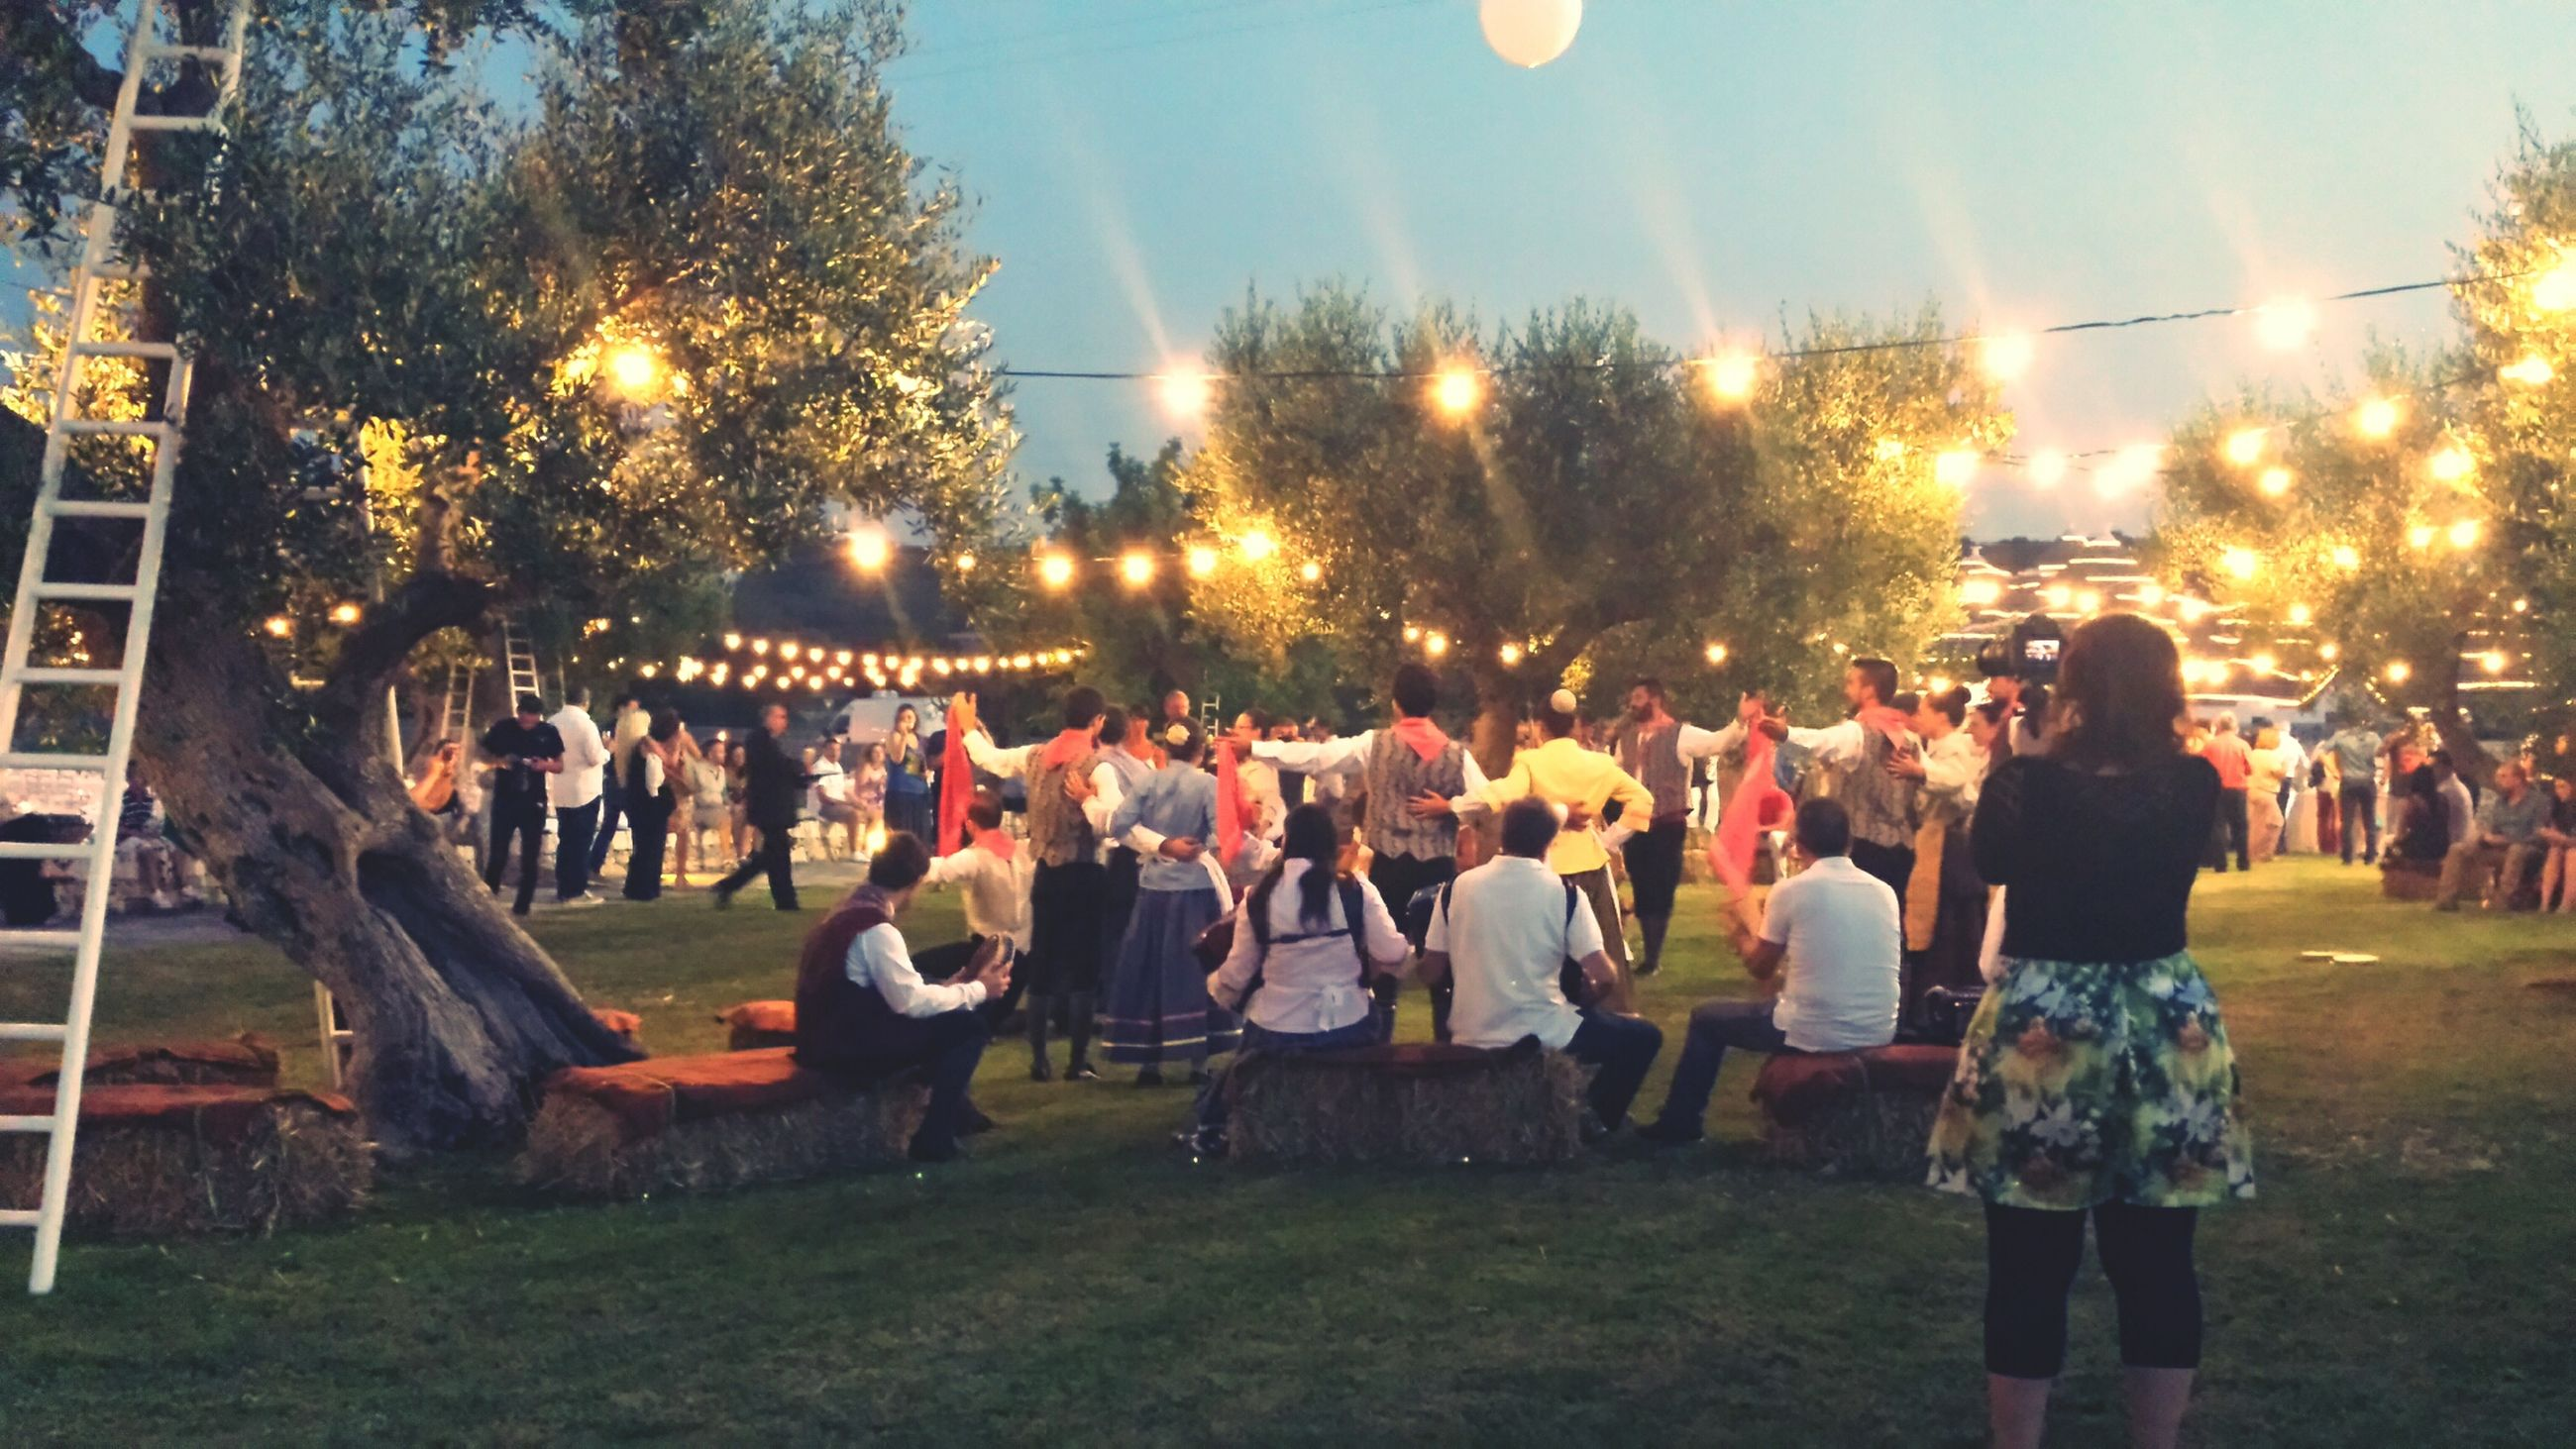 leisure activity, lifestyles, illuminated, large group of people, men, arts culture and entertainment, person, enjoyment, celebration, night, fun, event, grass, togetherness, sky, tree, crowd, playing, sitting